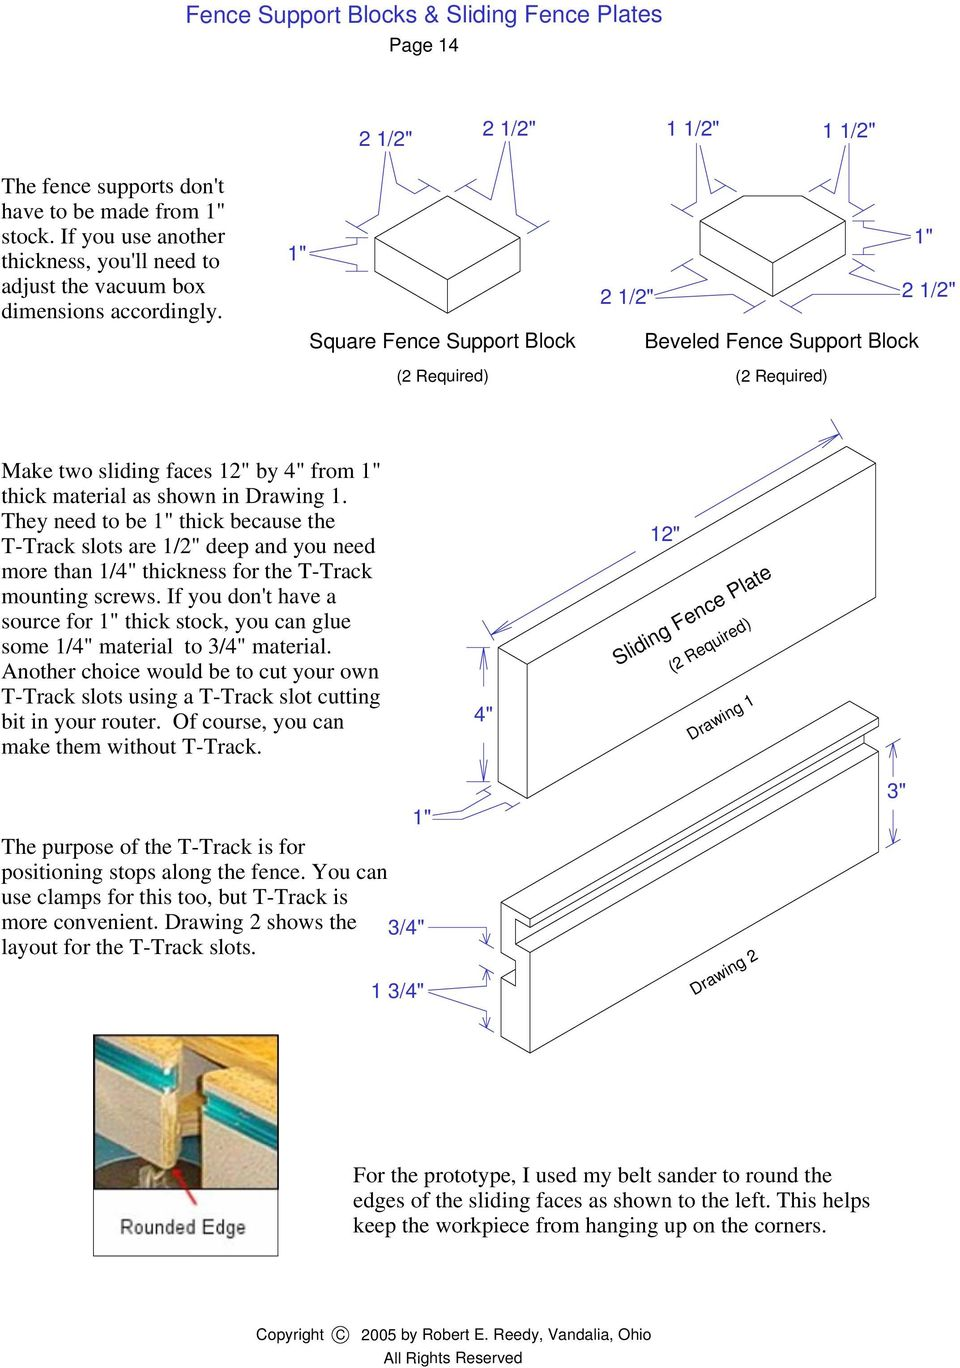 "1"" Square Fence Support Block (2 Required) 1"" 2 1/ 2 1/ Beveled Fence Support Block (2 Required) Make two sliding faces 1 by 4"" from 1"" thick material as shown in Drawing 1."